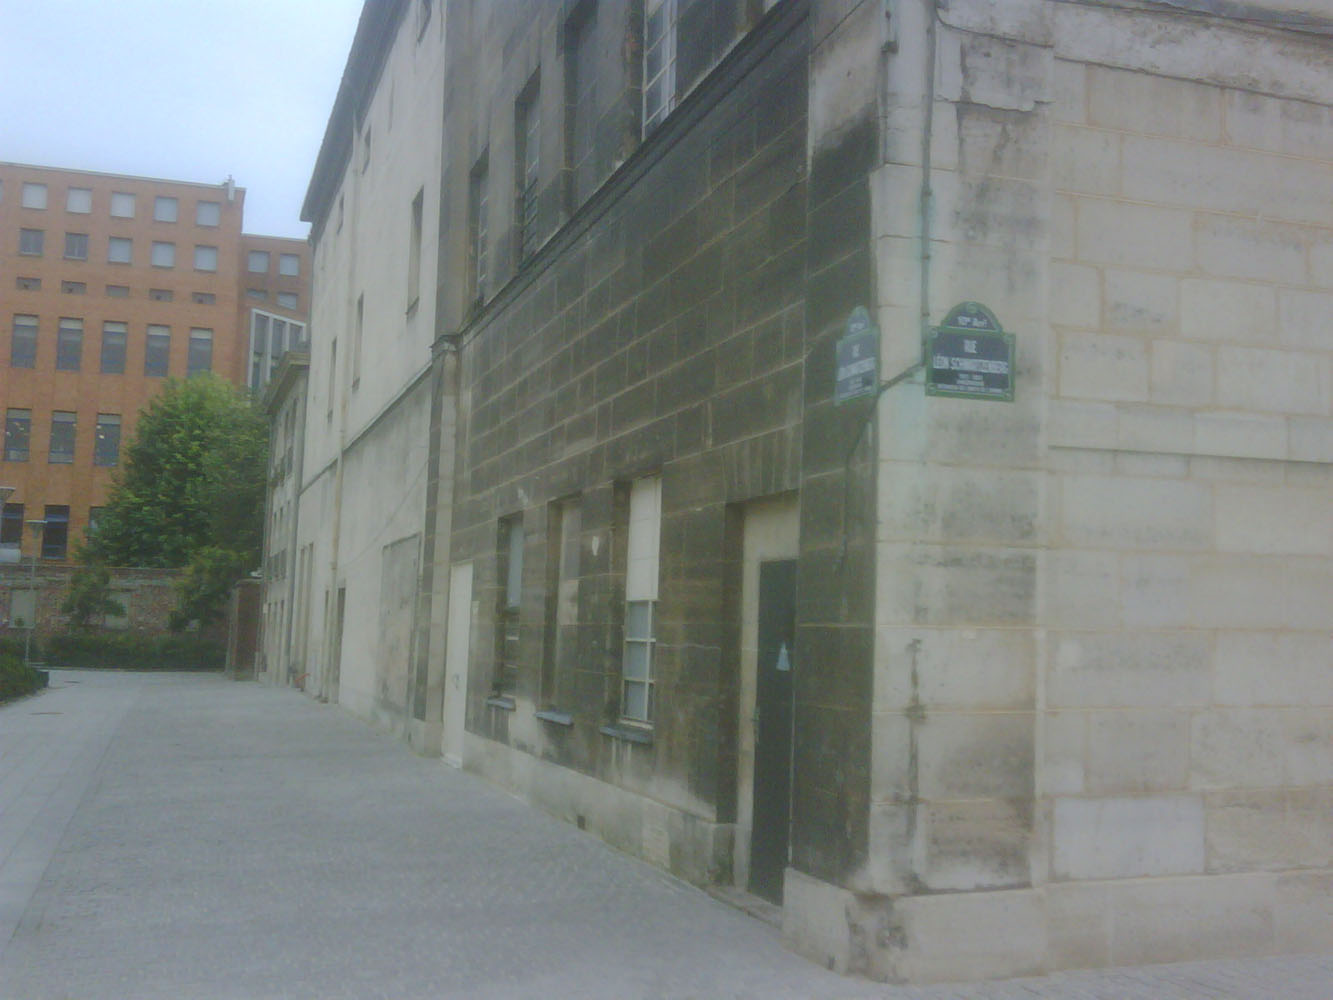 Prison Saint-Lazare, infirmary wing, exterior view